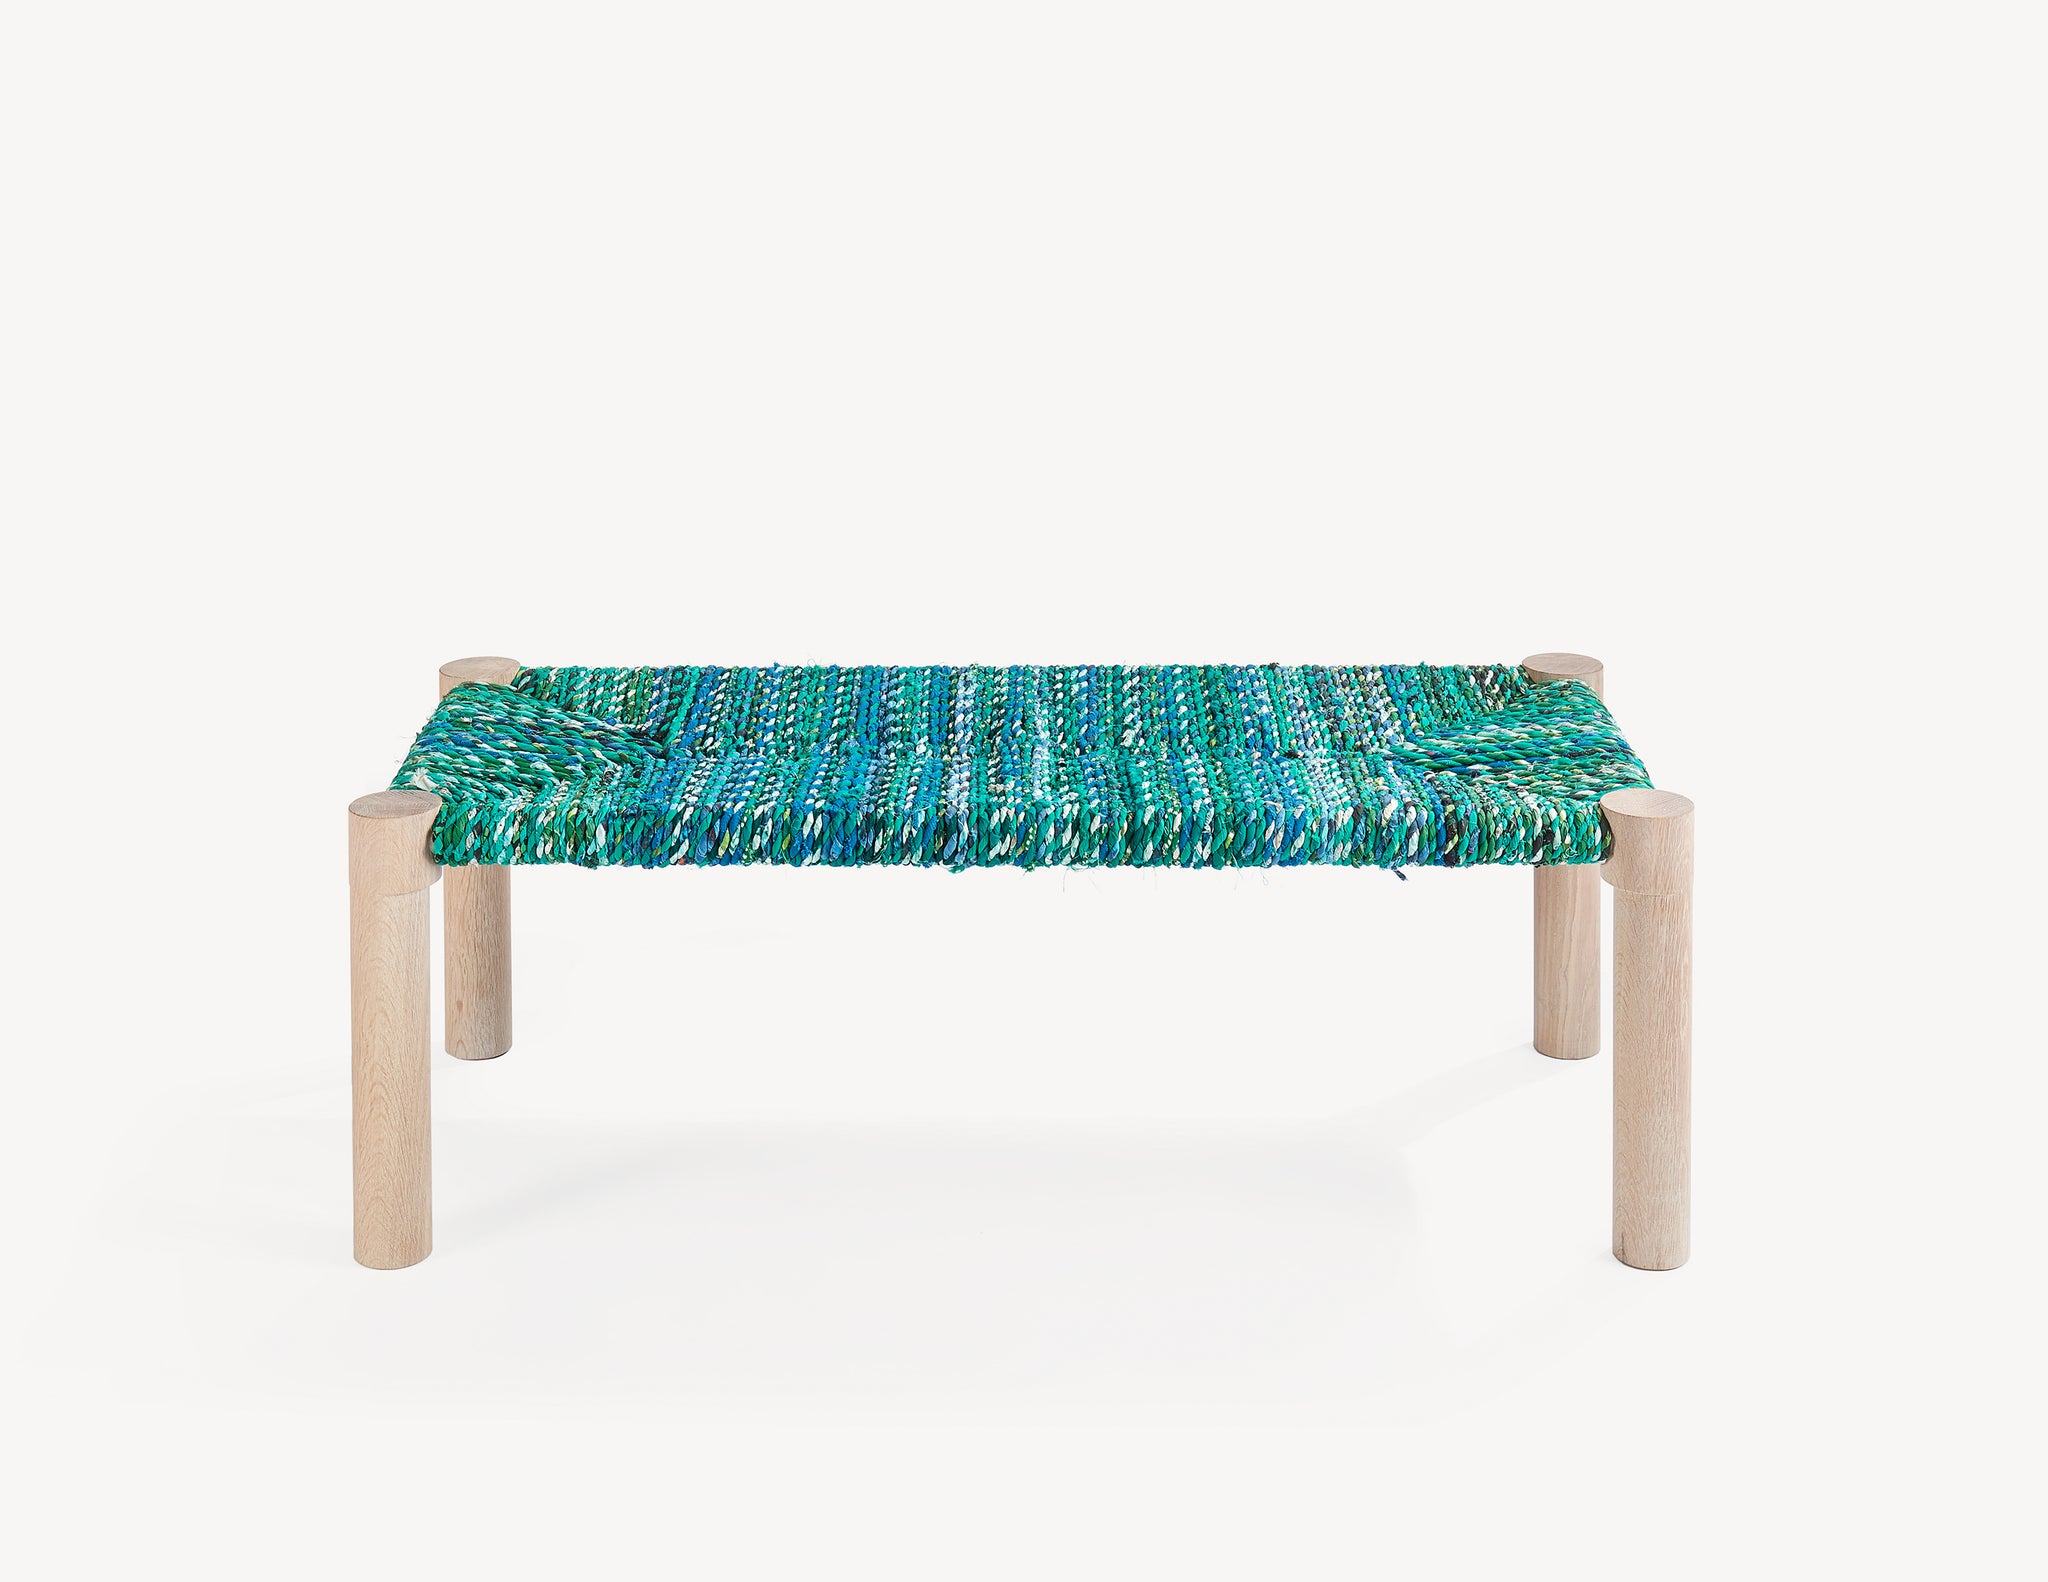 Marrakesh Bench